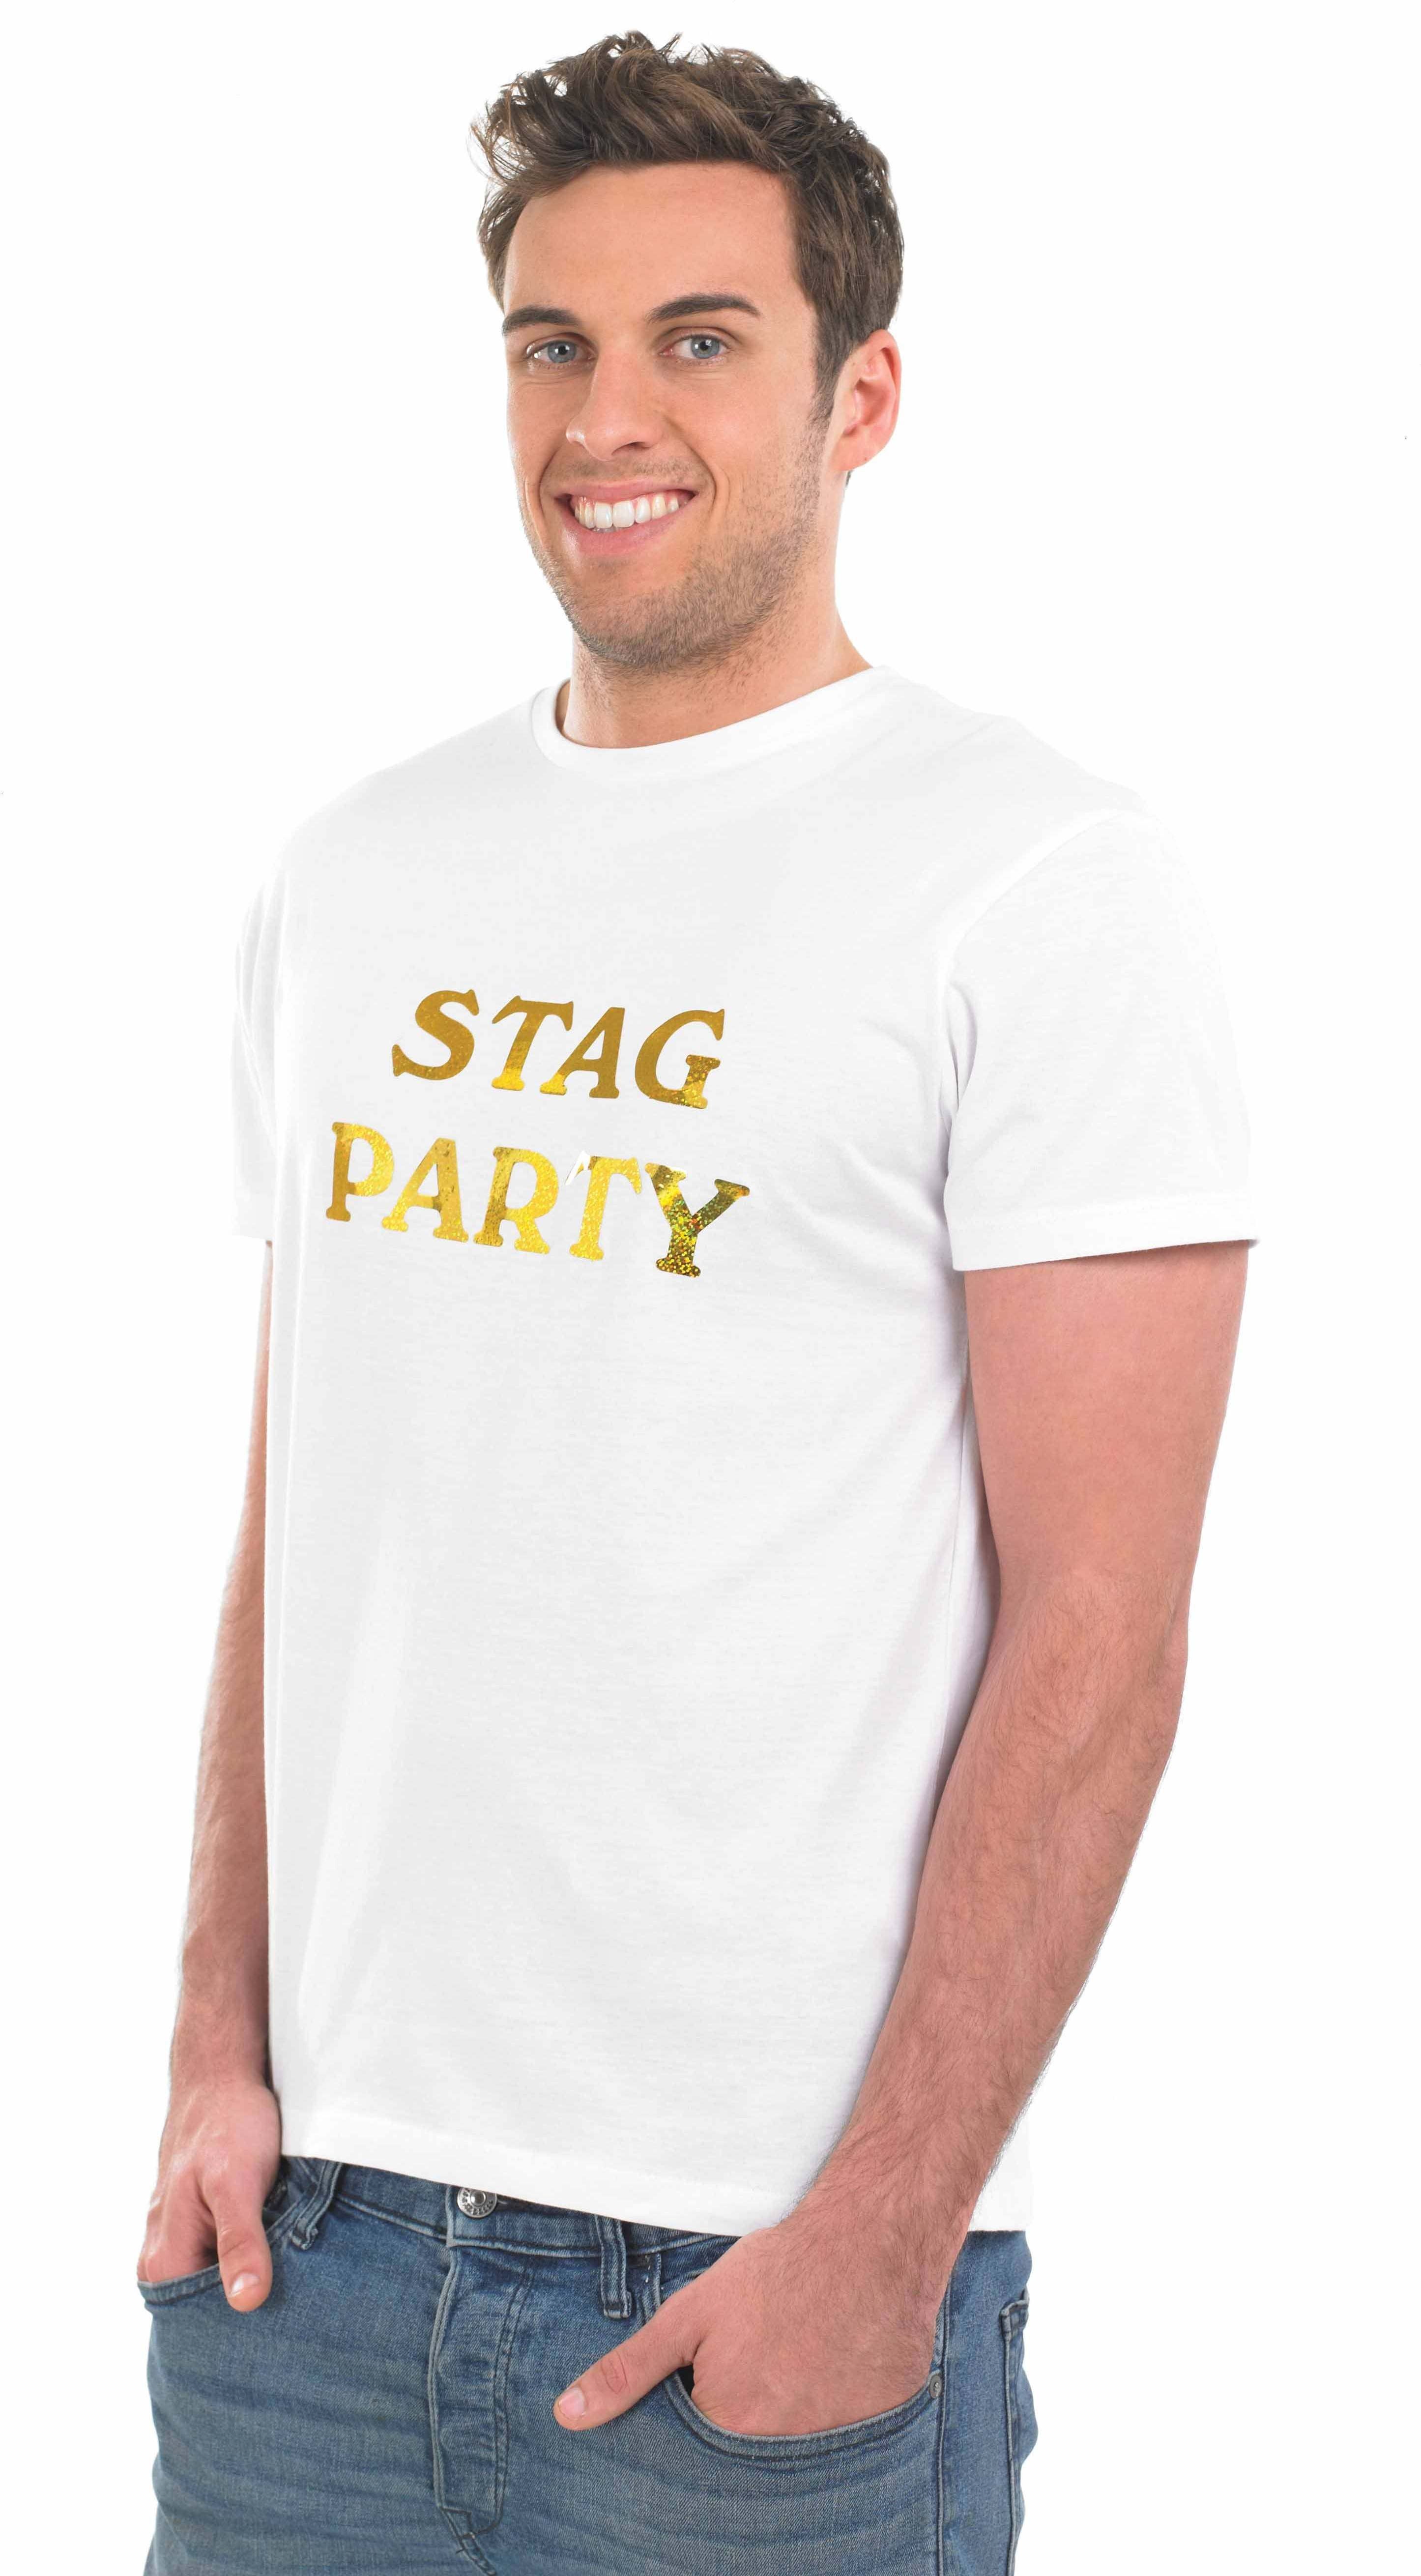 Stag Party Iron On Transfer Accessories